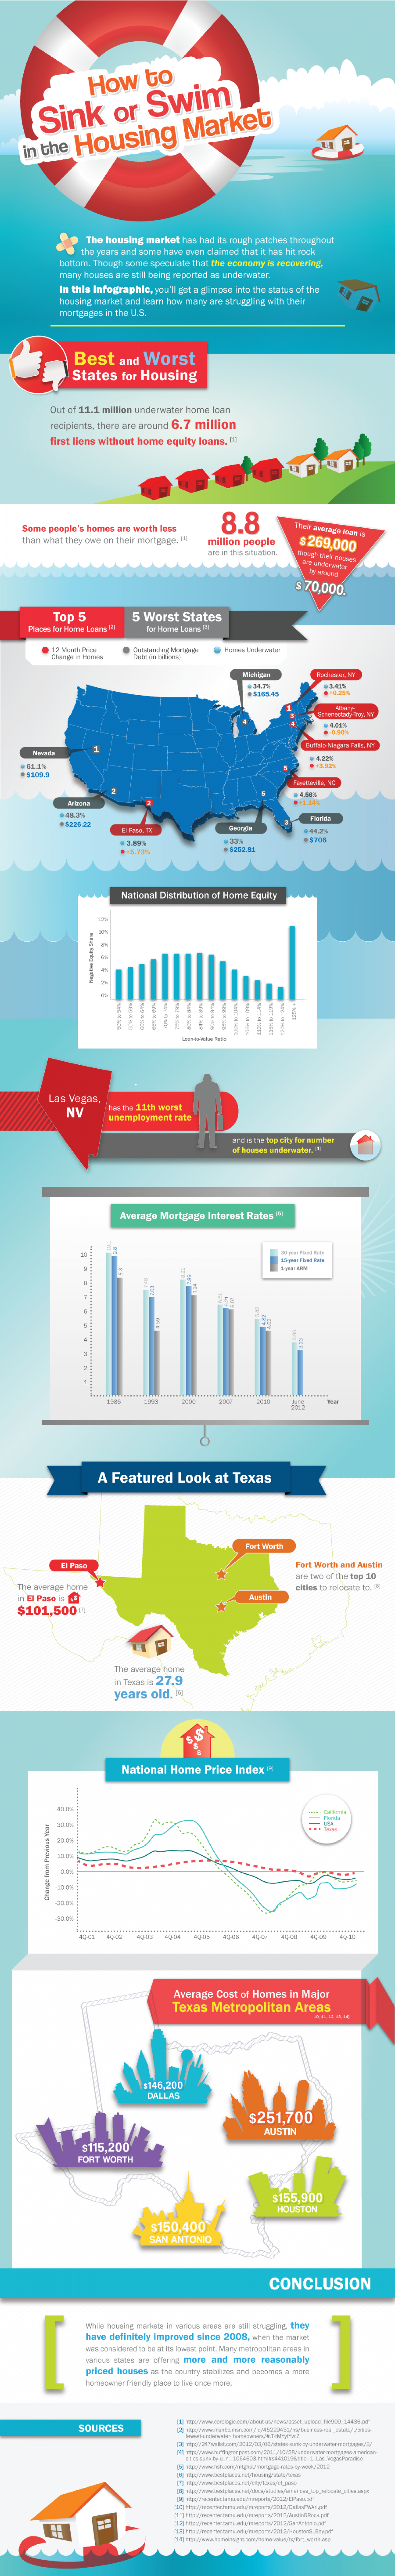 How to Sink or Swim in the Housing Market Infographic